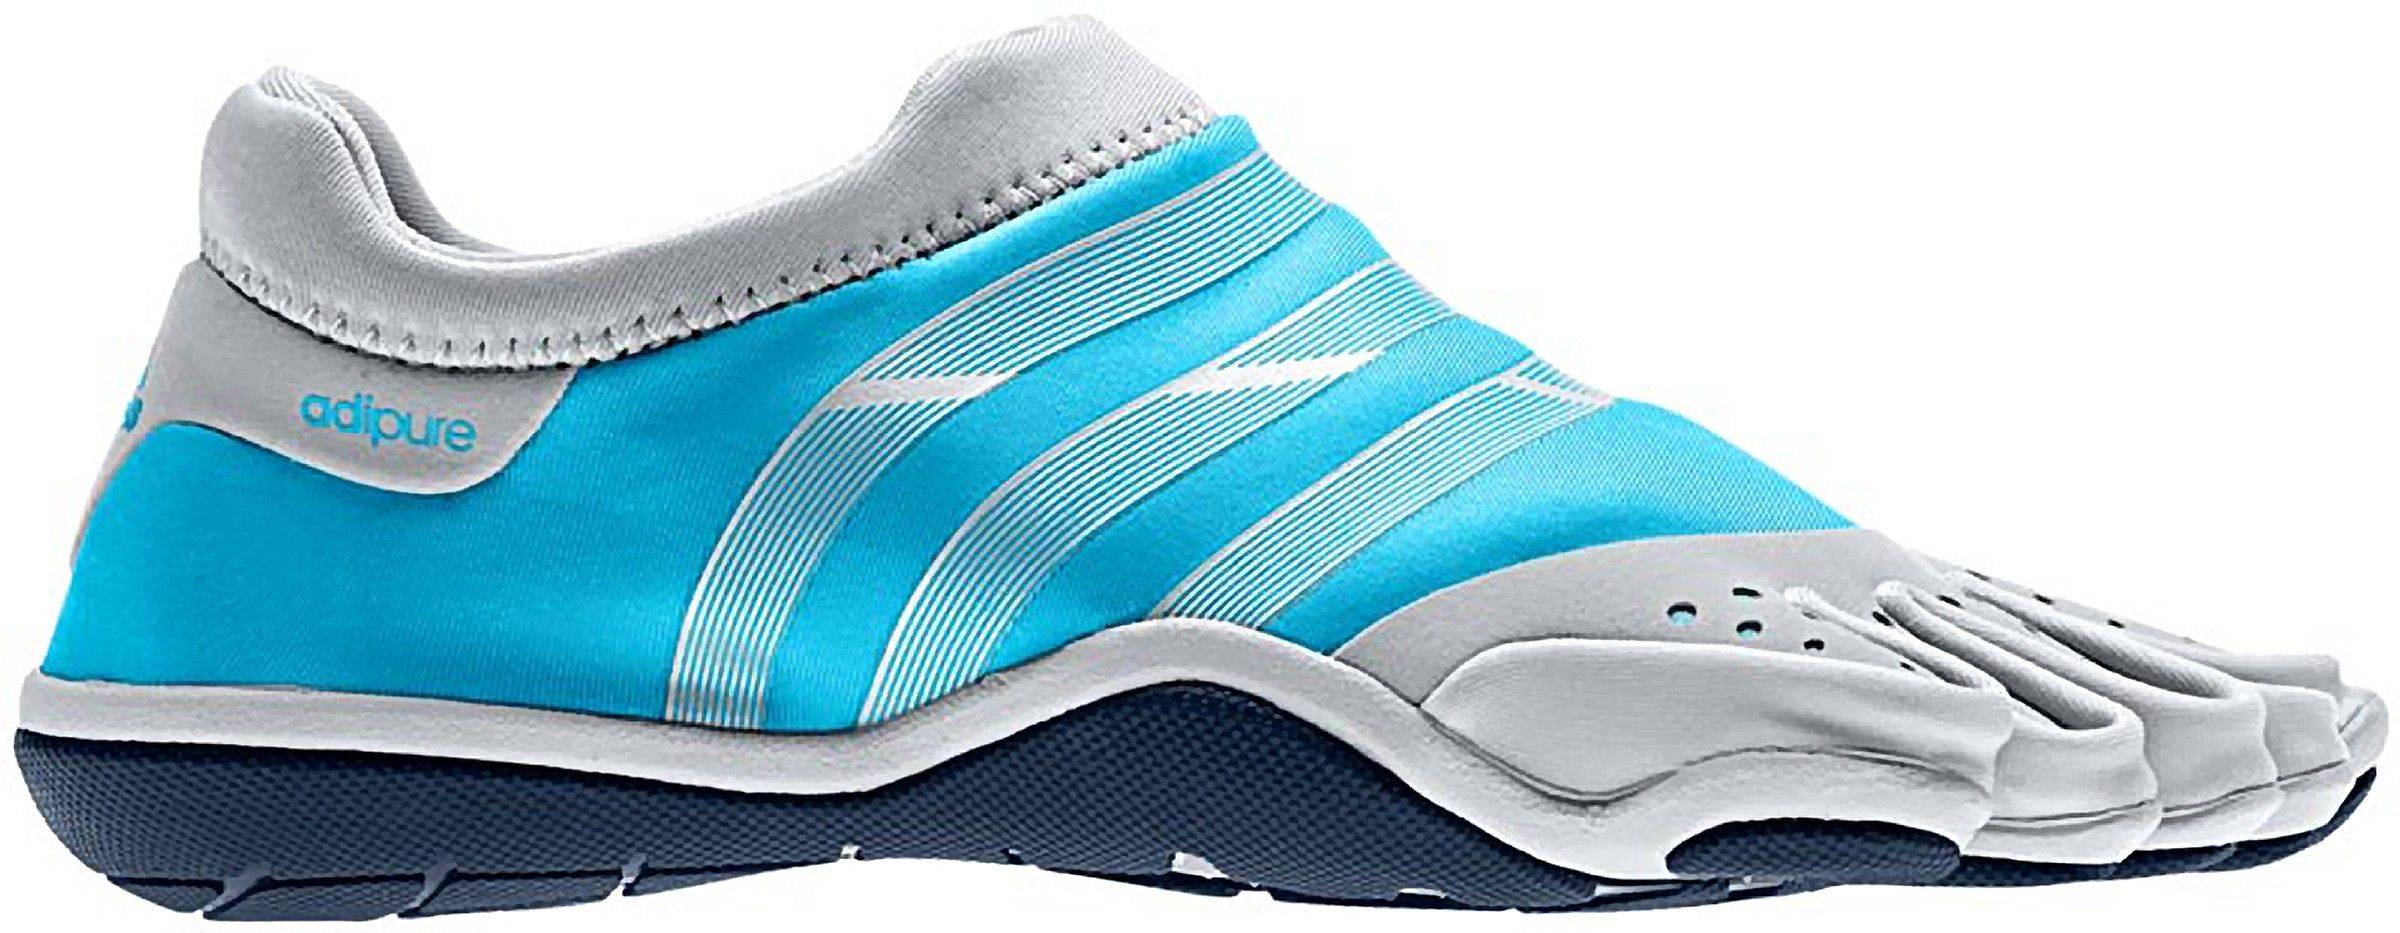 Associated Press In this product Image provided by Adidas, the Adipure Trainer W, in intense blue and metallic silver, is shown. Adidas is trying to tap into the growing niche U.S. market of people who want to run in shoes that mimic the experience of running barefoot, but offer the protection, traction and durability of traditional athletic shoes.